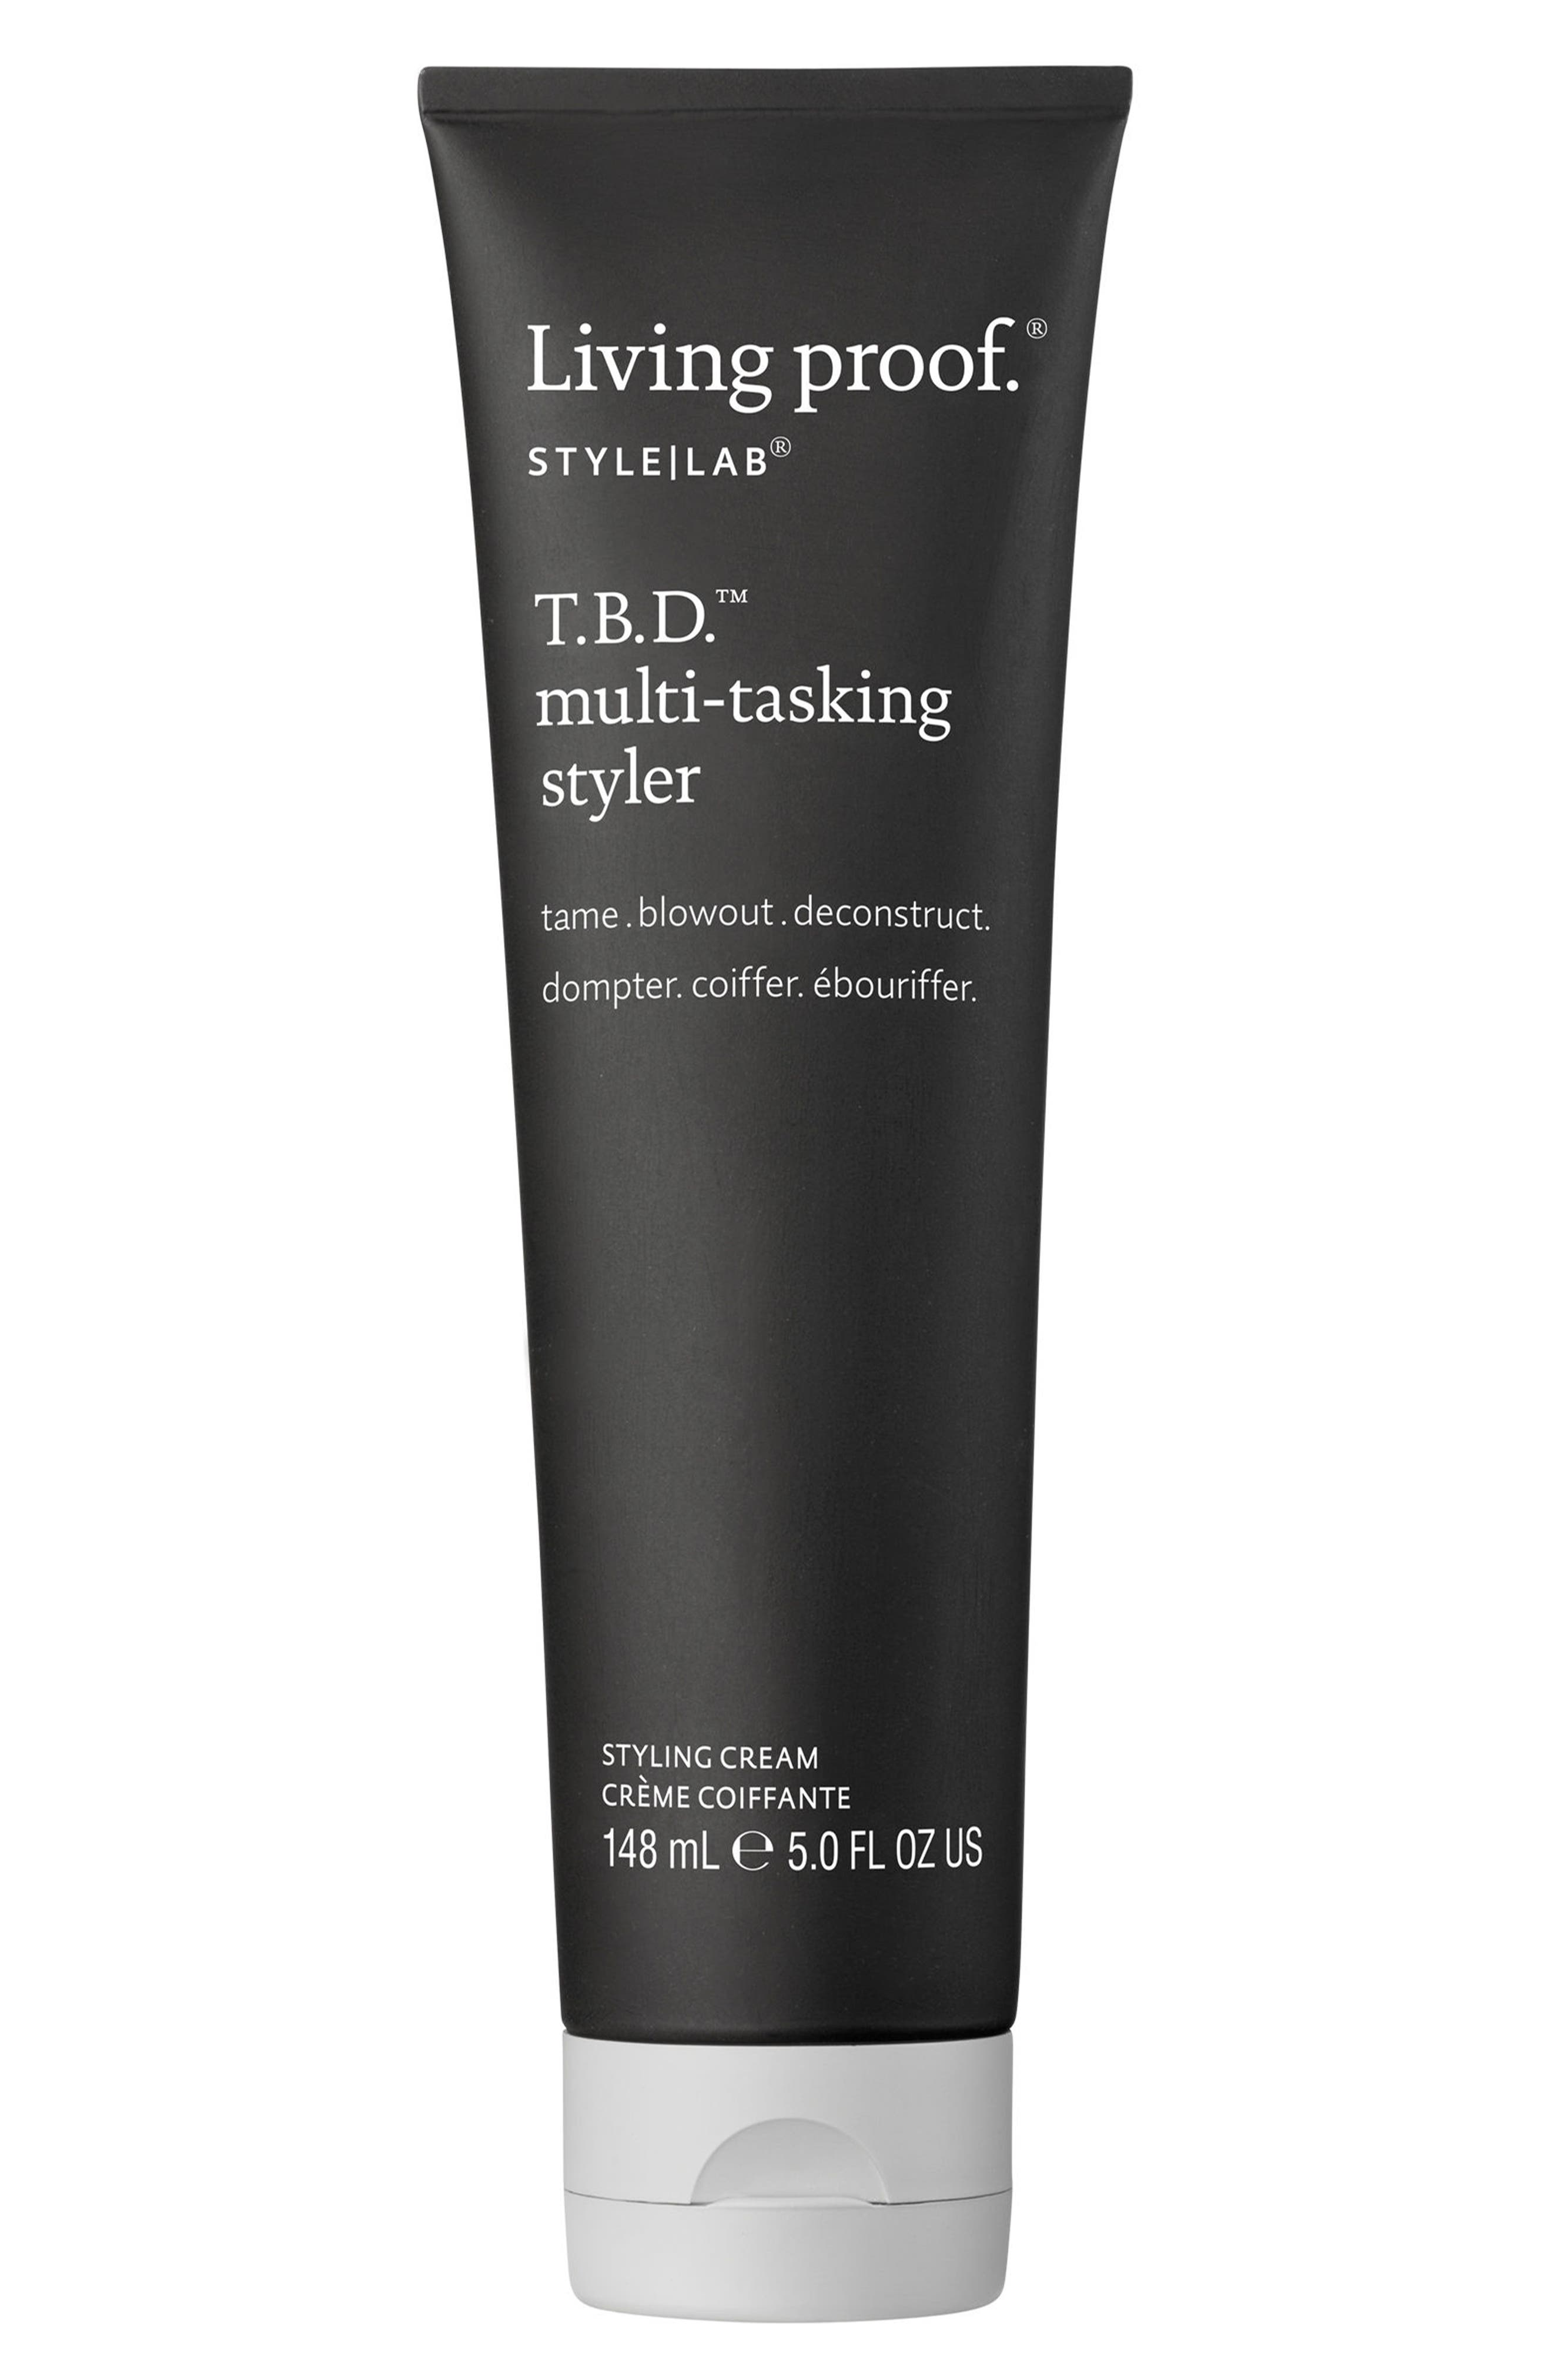 Main Image - Living proof® T.B.D. Multi-Tasking Styler